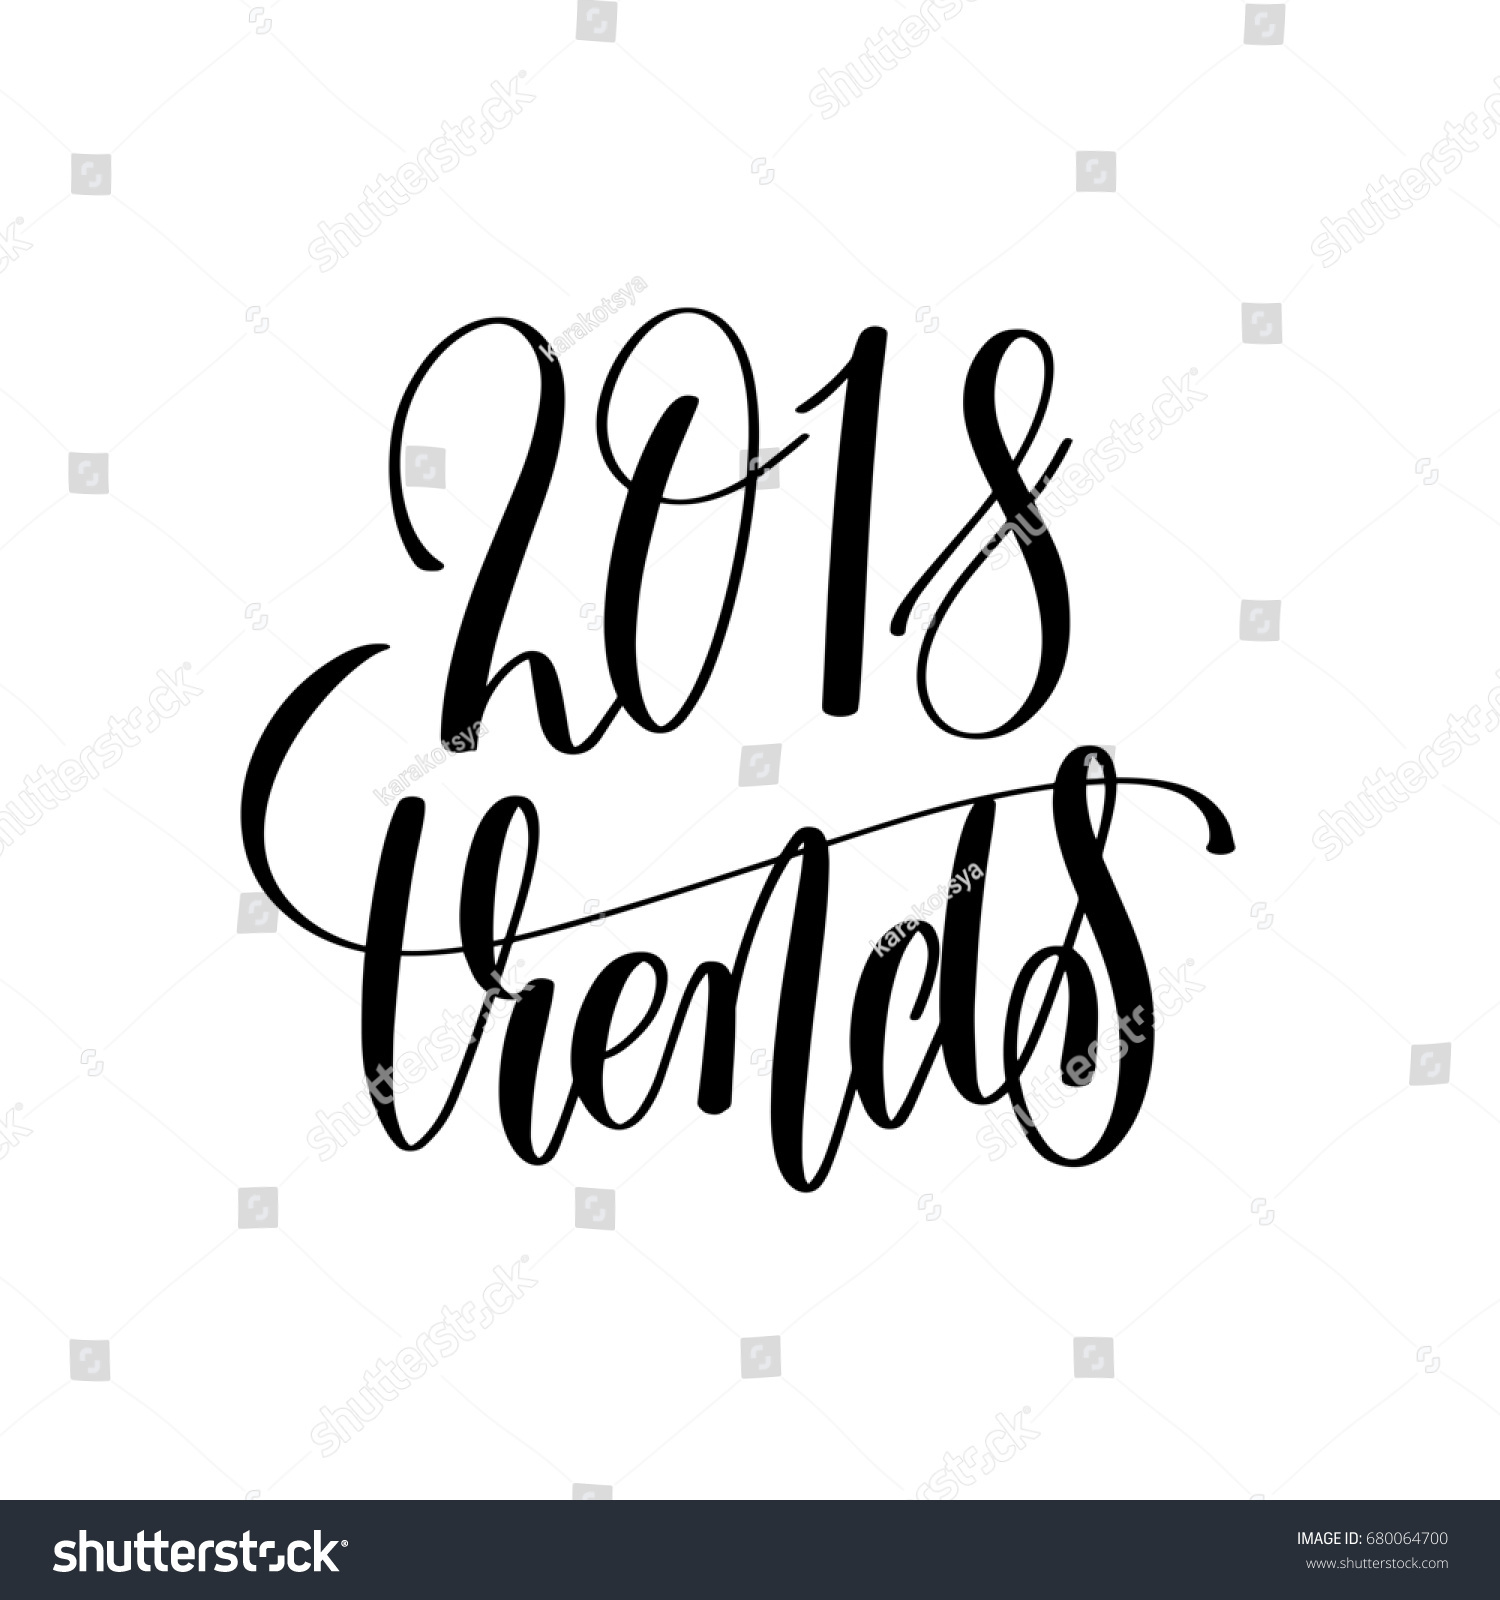 2018 Trends Hand Lettering Text Calligraphy Stock